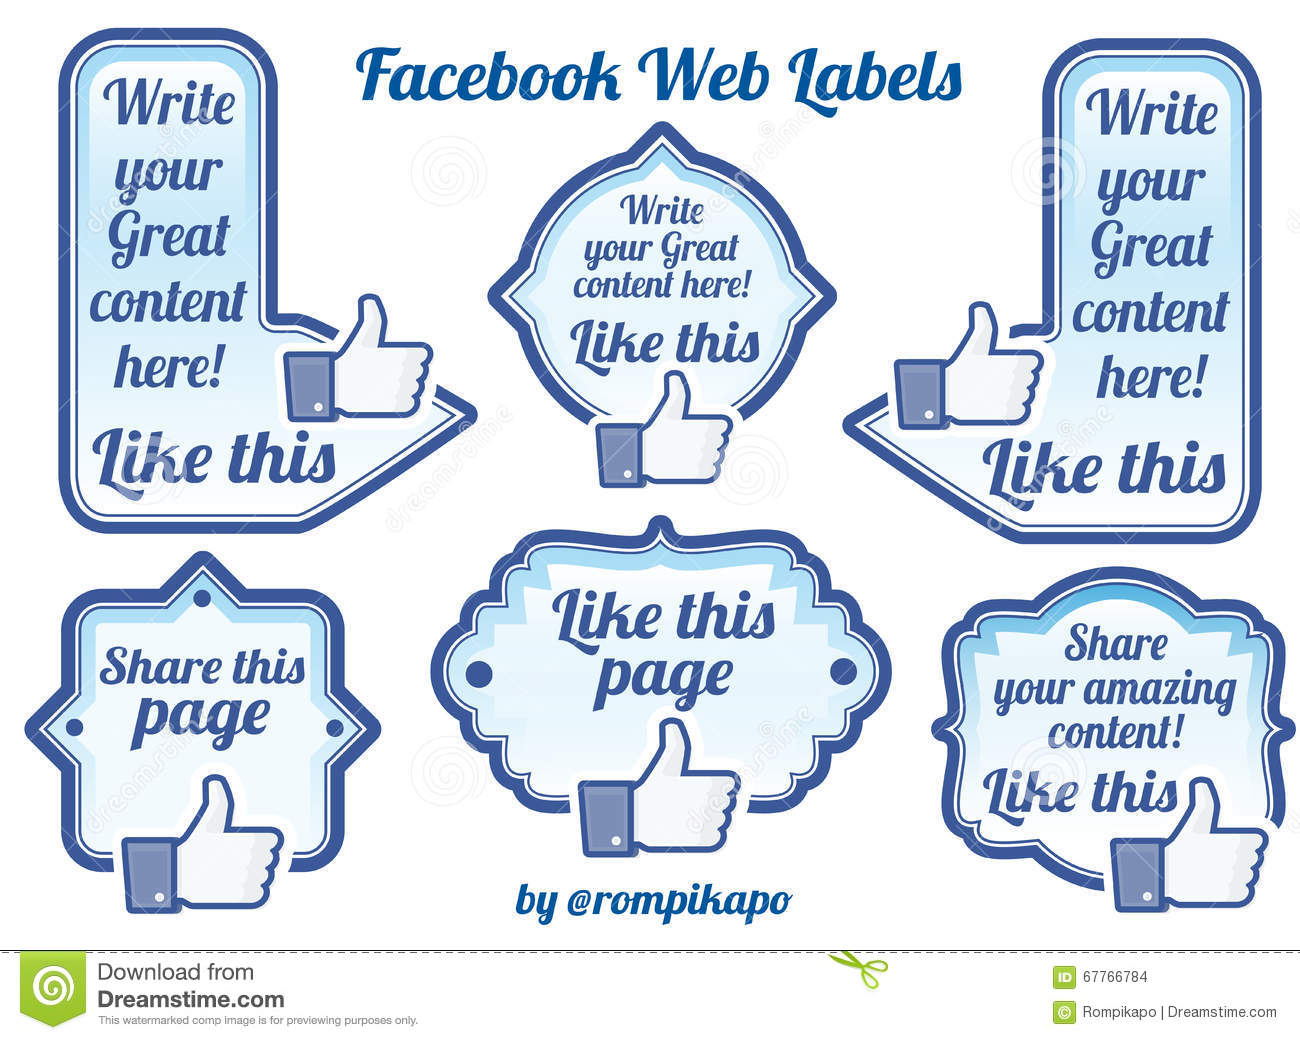 Facebook Is Great For Sharing Pictures >> Facebook Sharing Labels And Buttons Editorial Stock Image